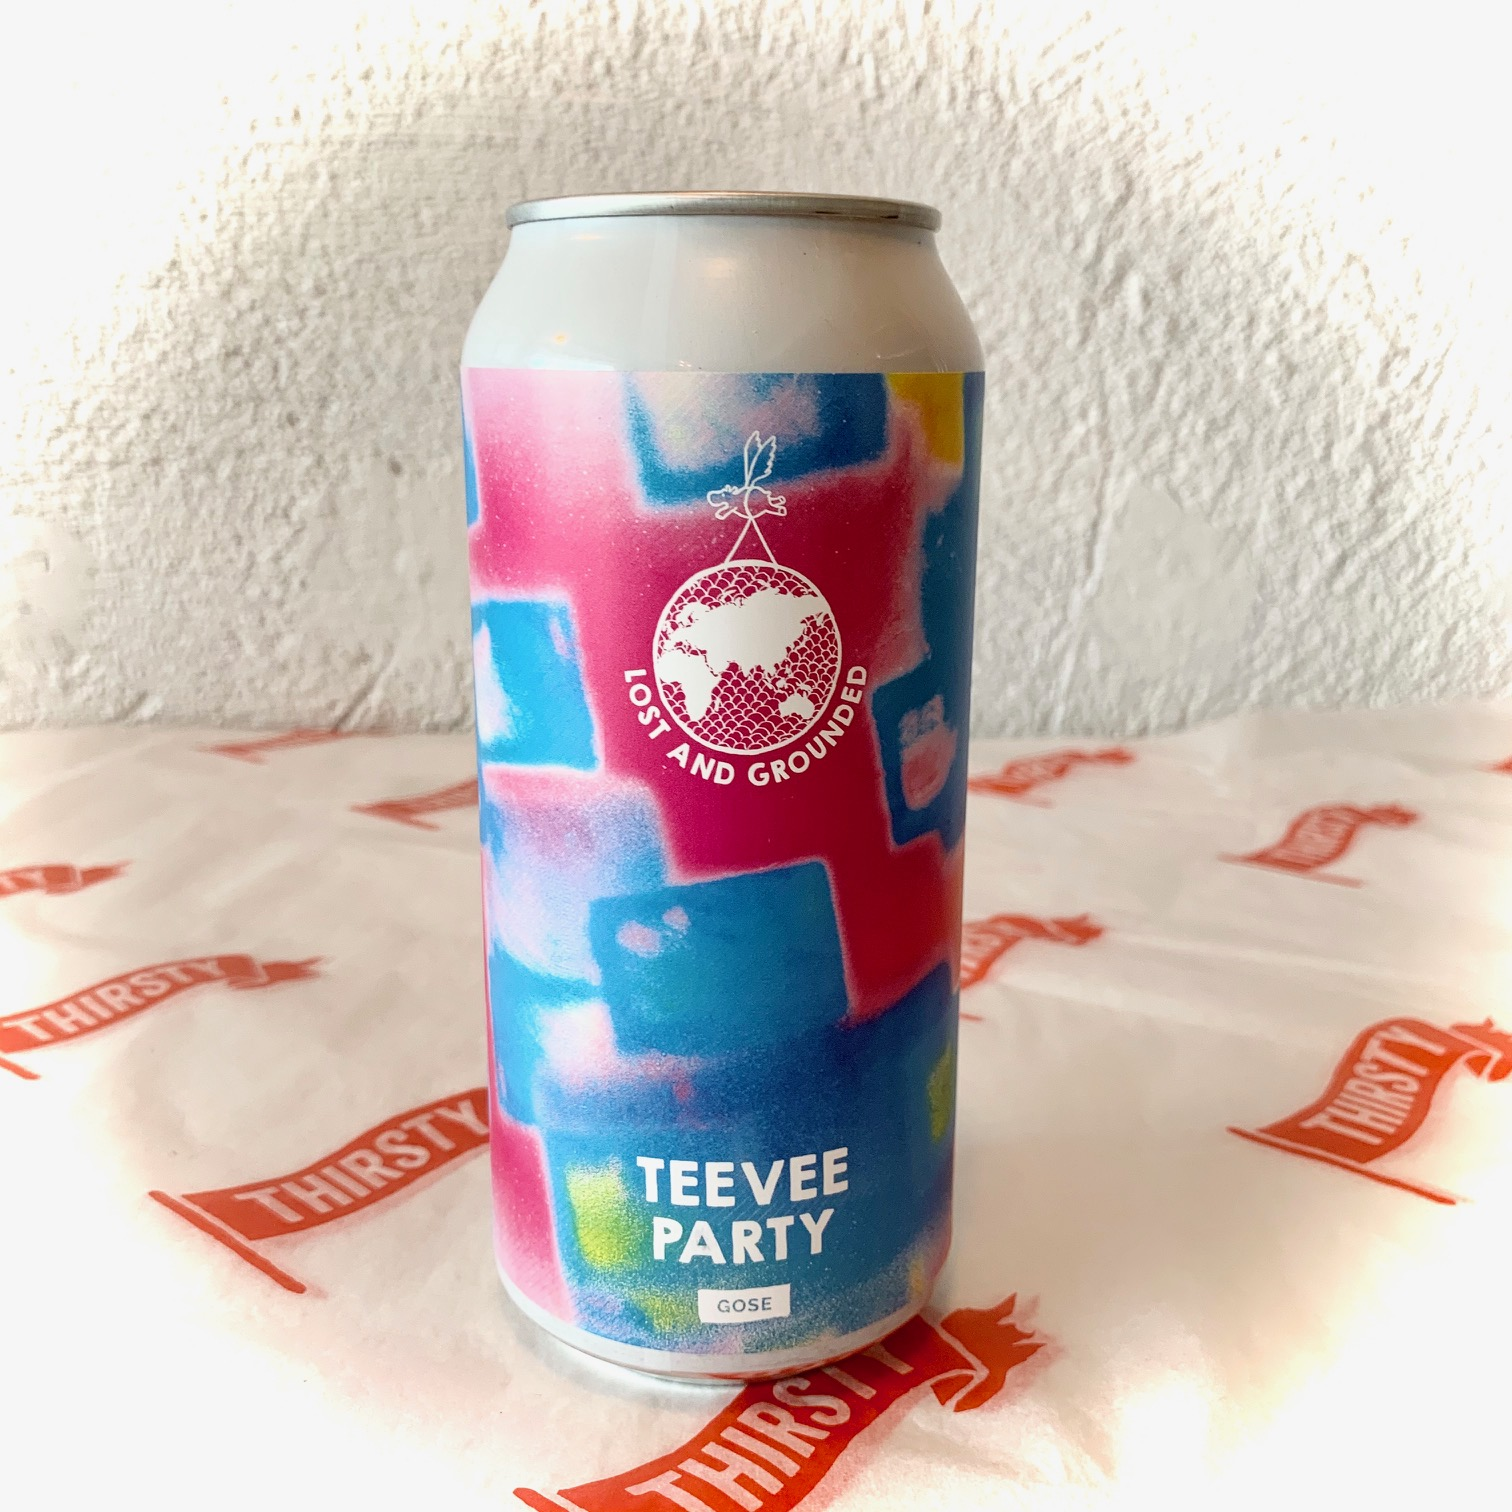 Lost & Grounded | Teevee Party | 4.8% 440ml